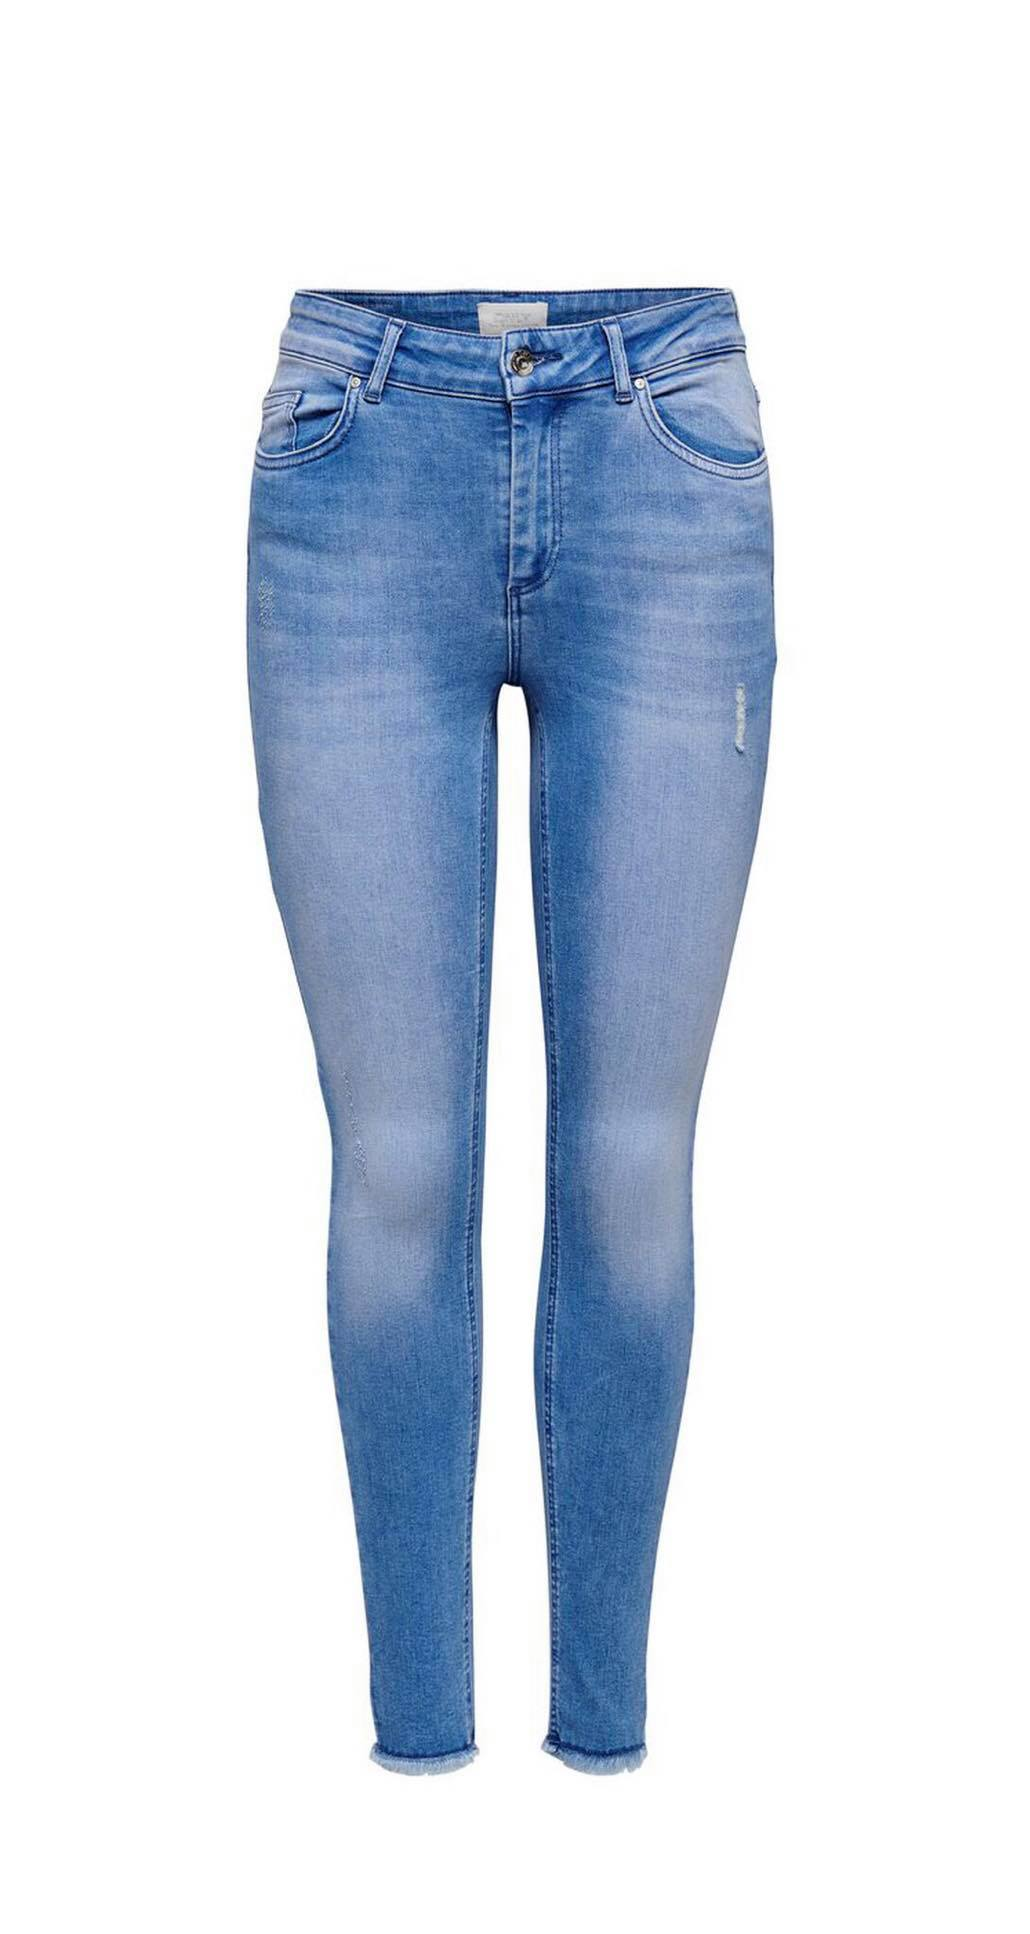 Jean skinny ONLY - Bleu clair